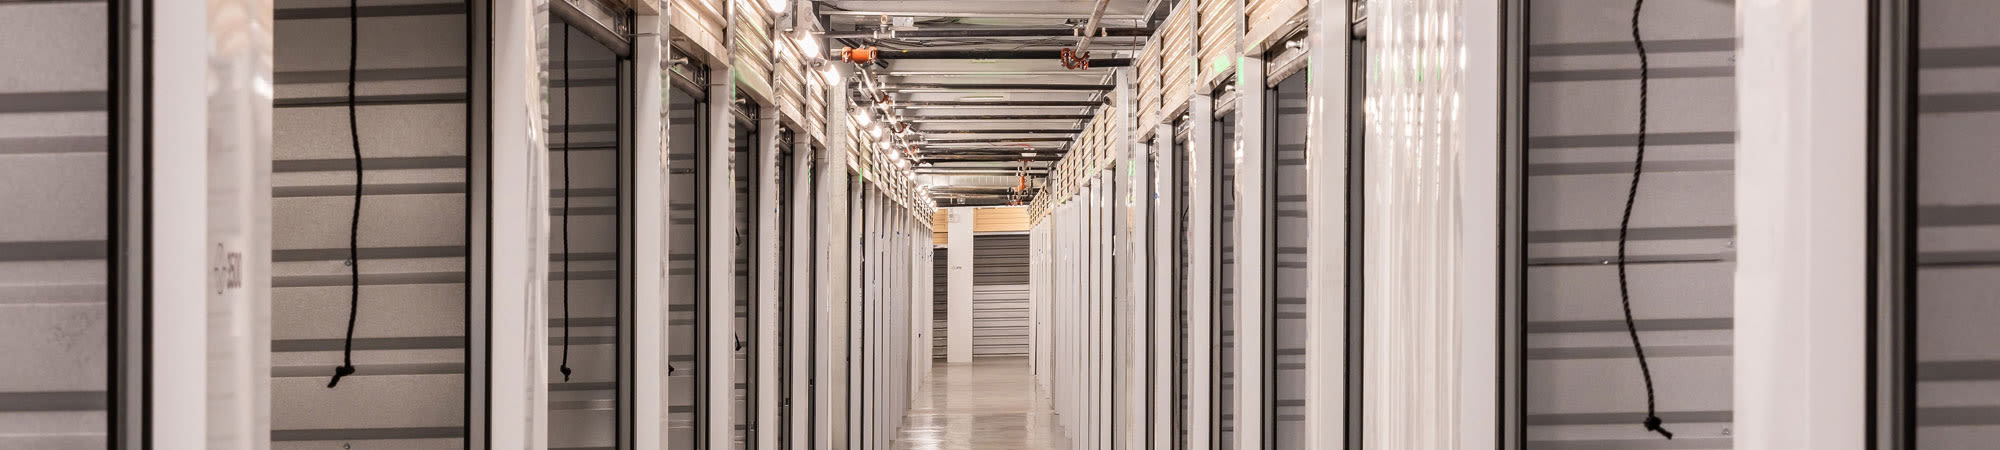 Climate-controlled storage at Cubes Self Storage in Bountiful, Utah